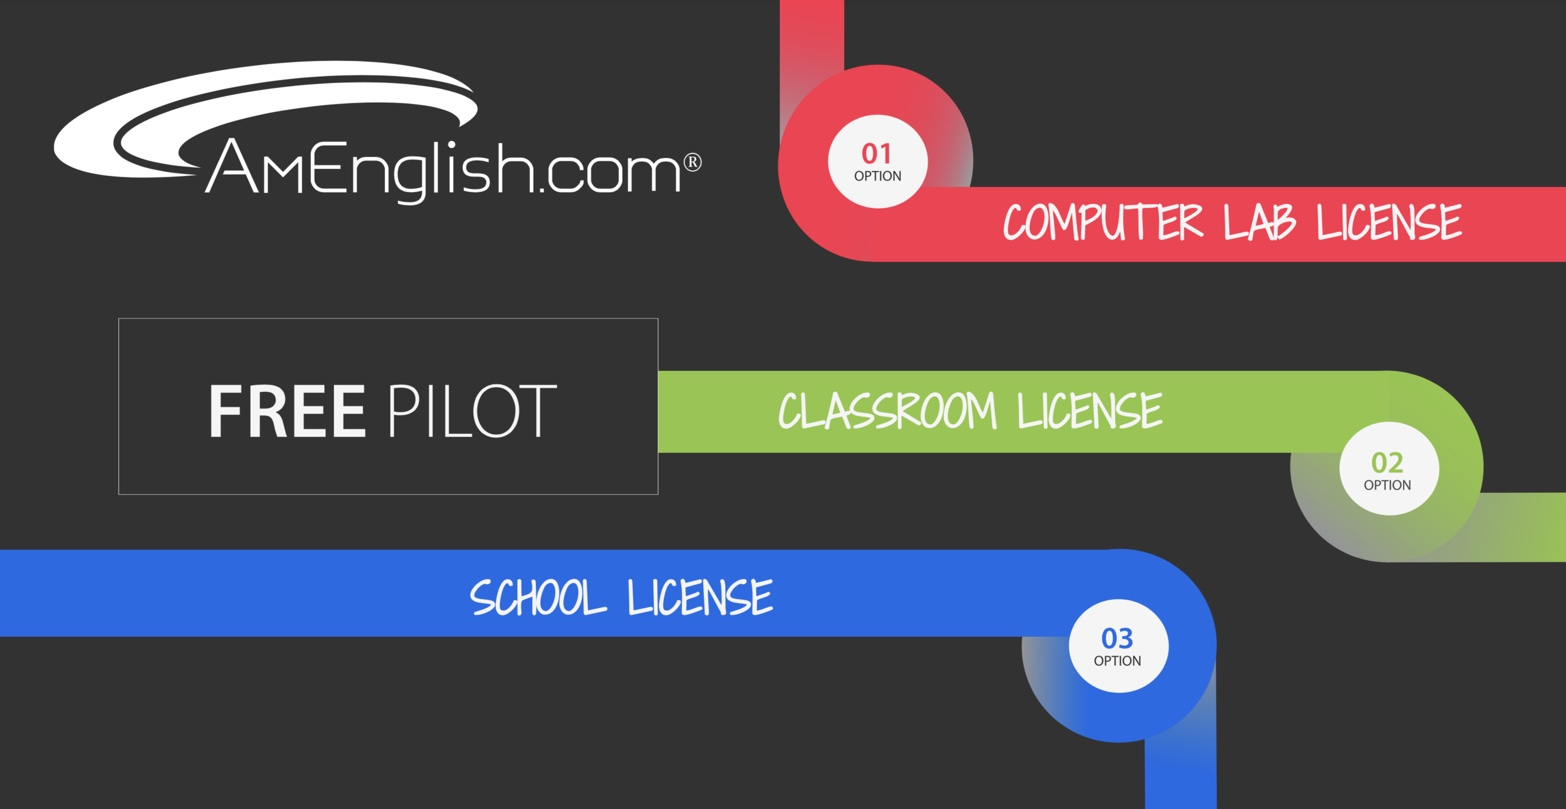 Licenses from AmEnglish.com